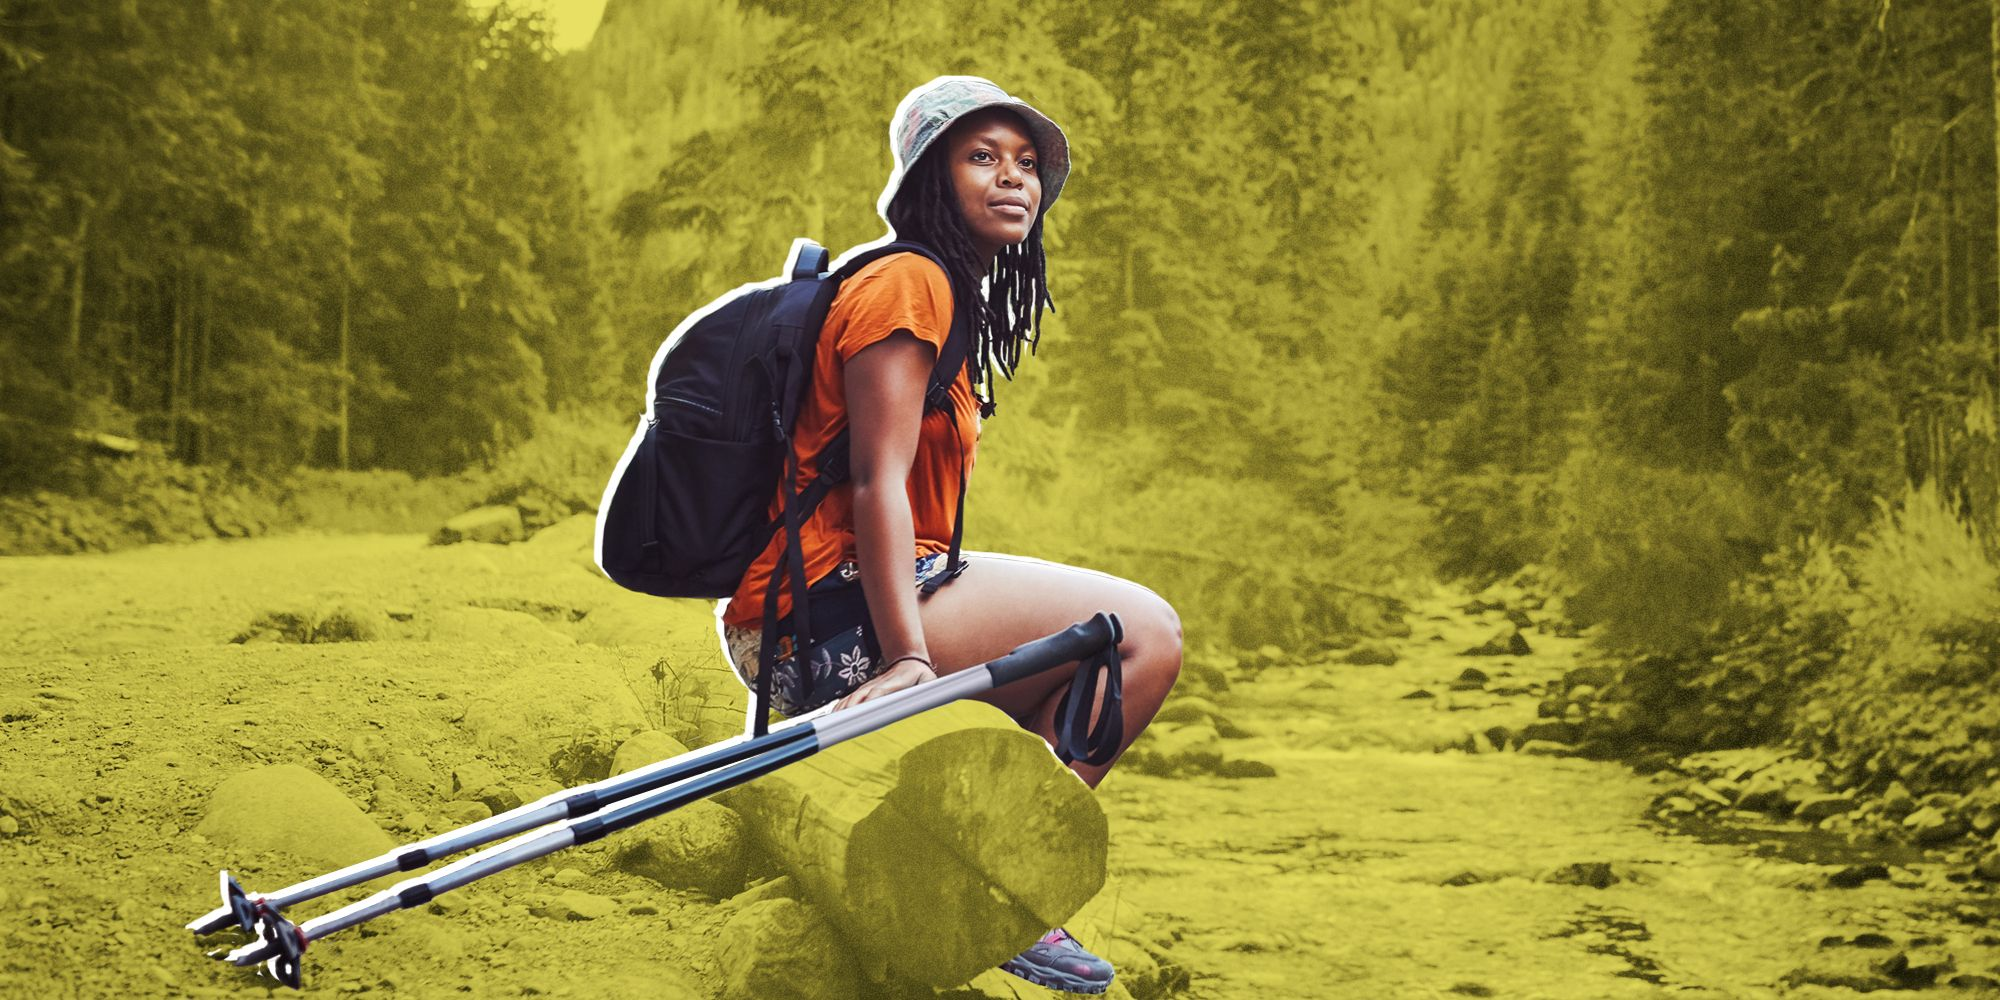 28 Stylish Hiking Outfits for Women - Stylish Outdoor Clothes